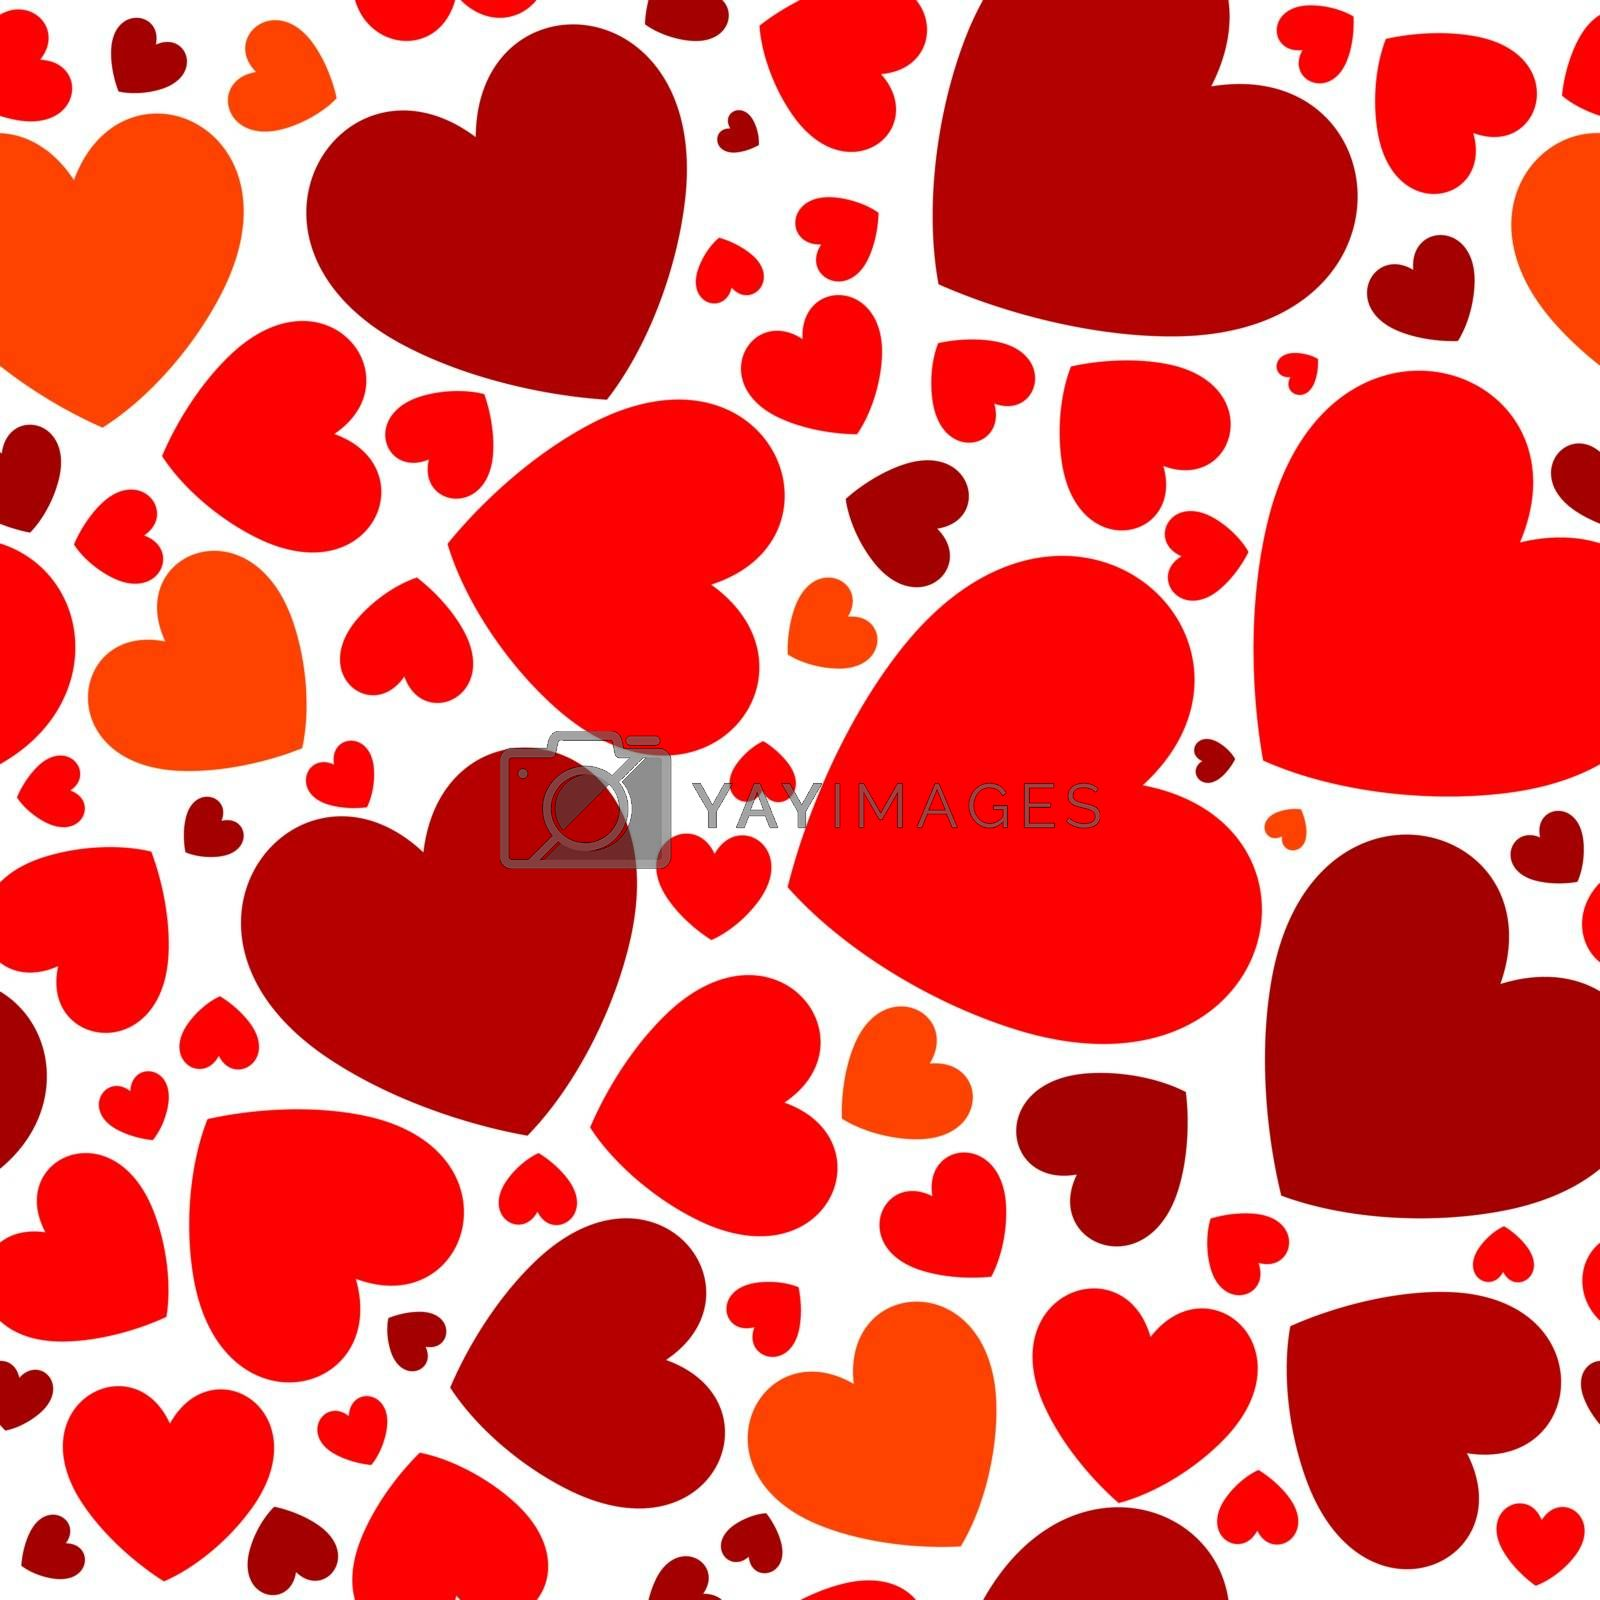 Bright red hearts by liolle